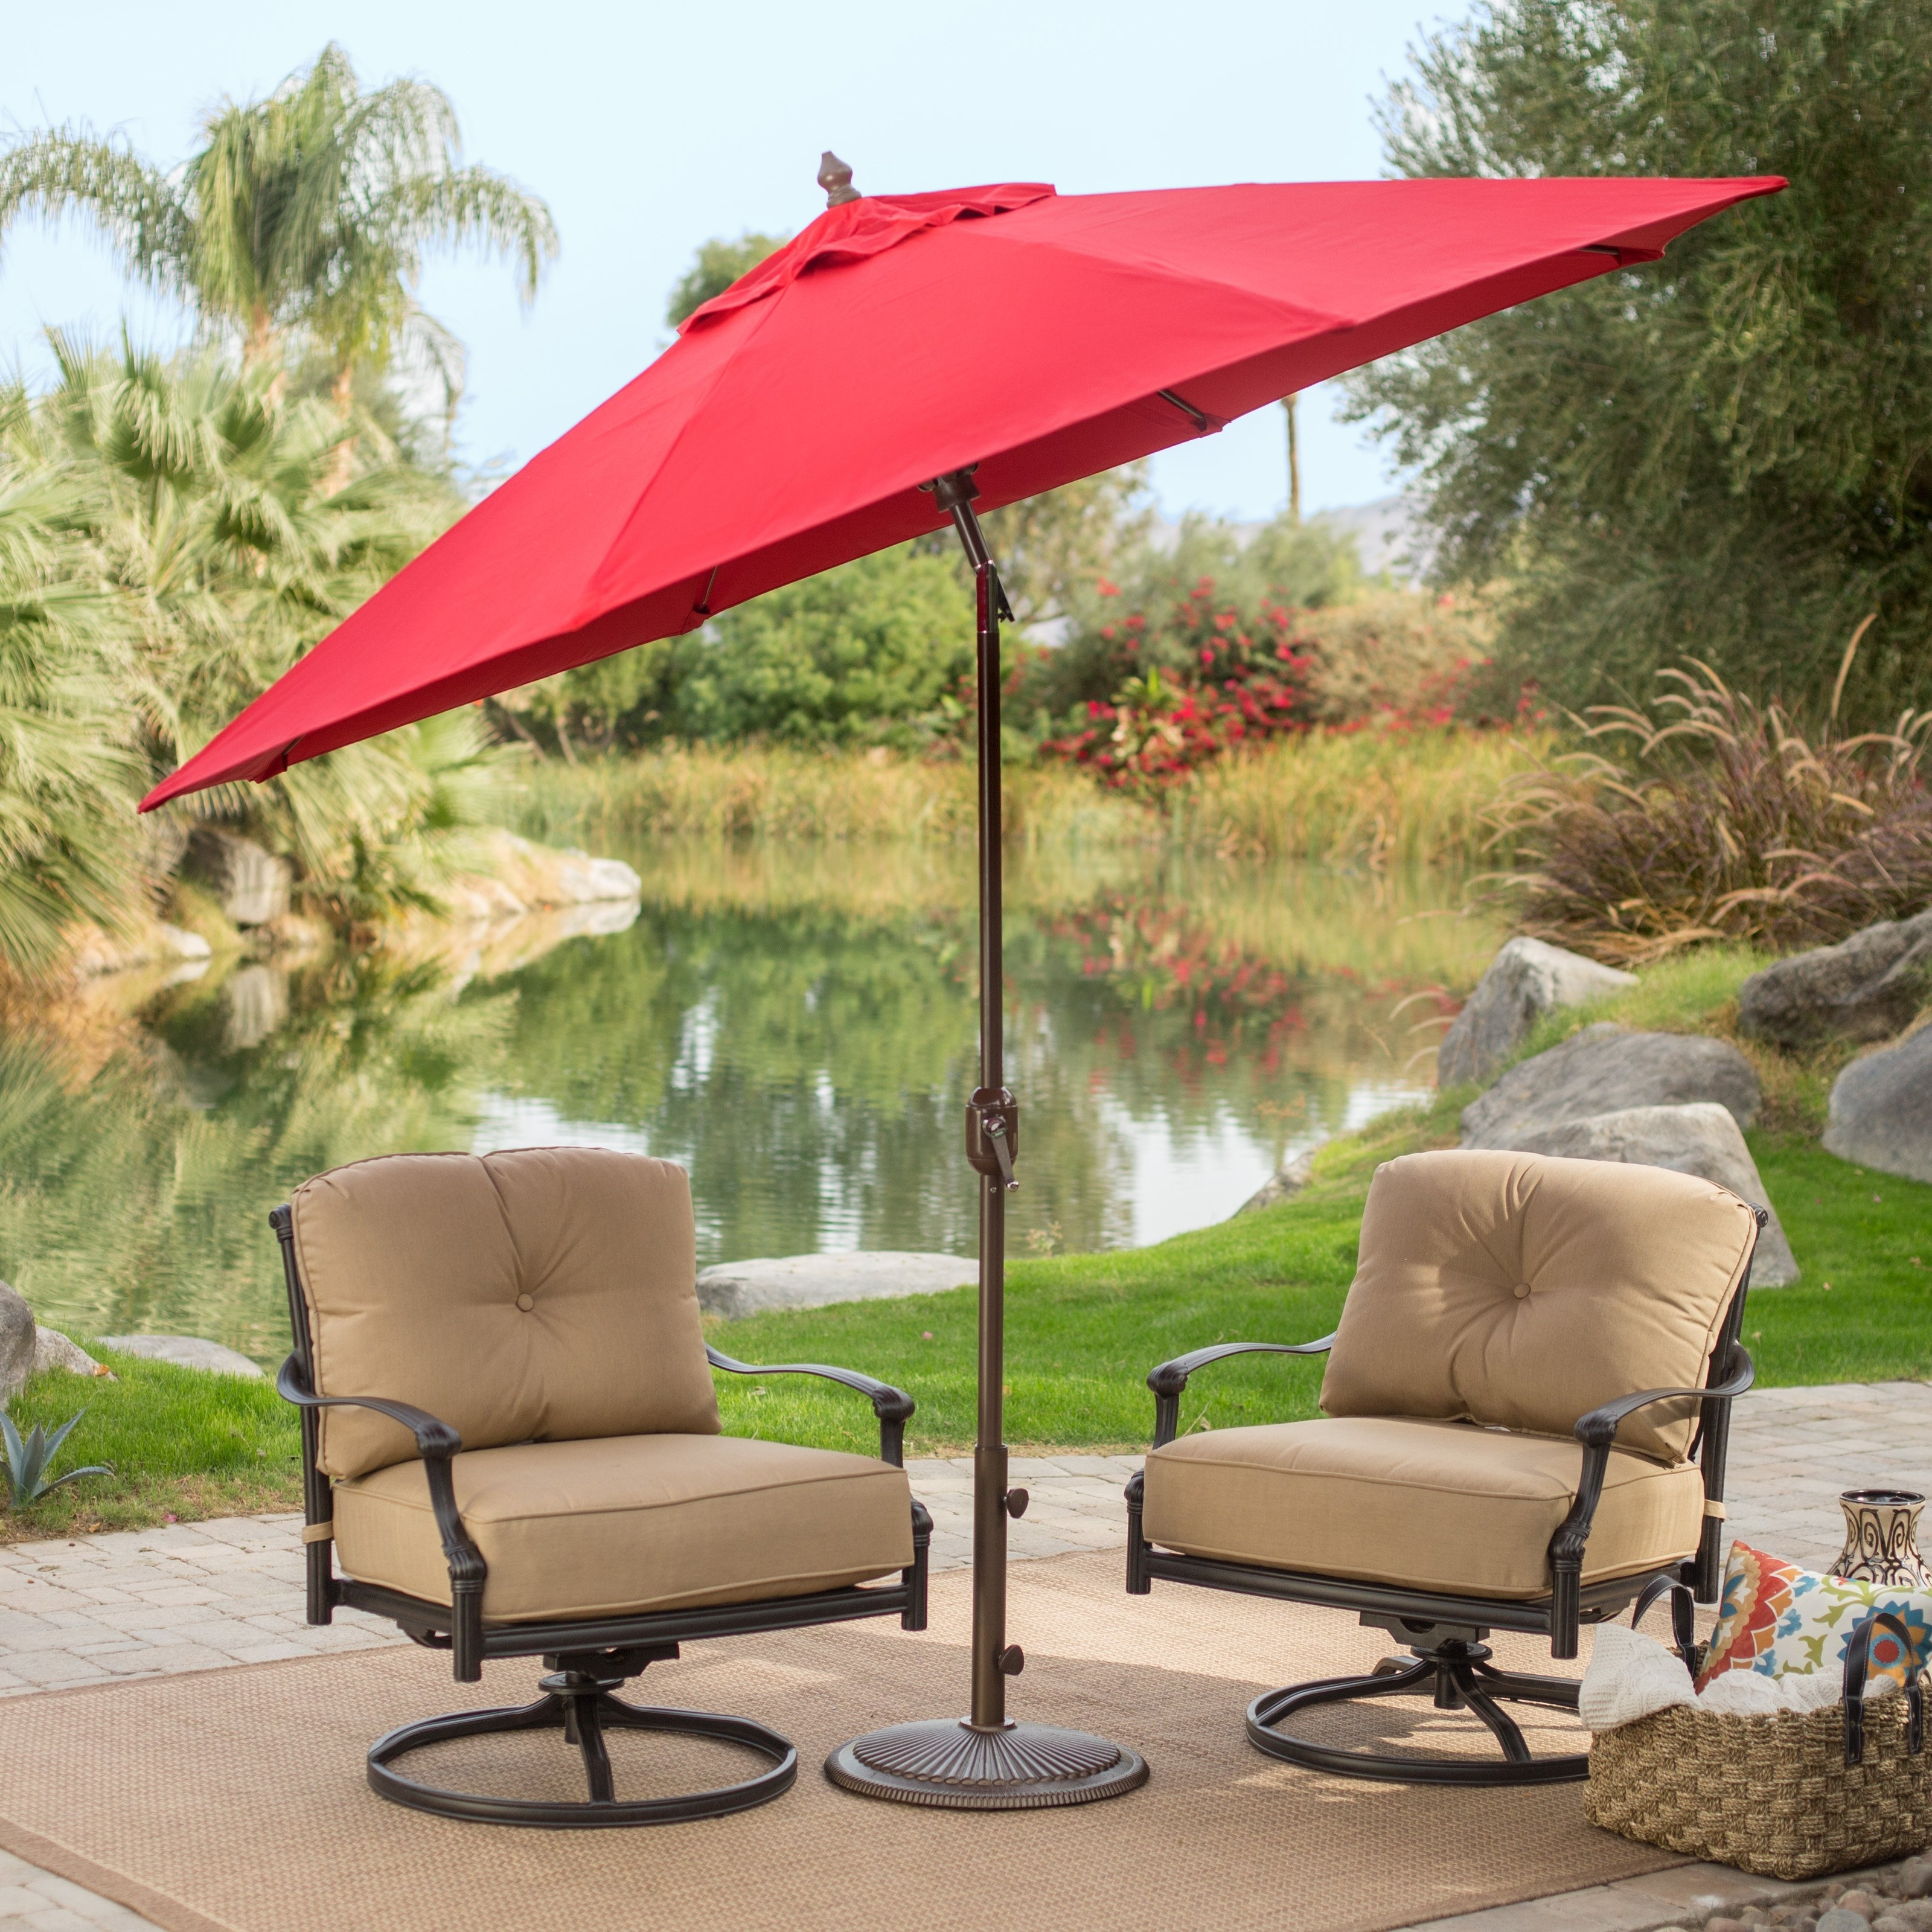 Most Recently Released Patio Umbrellas With Fans Within Coral Coast 9 Ft (View 10 of 20)